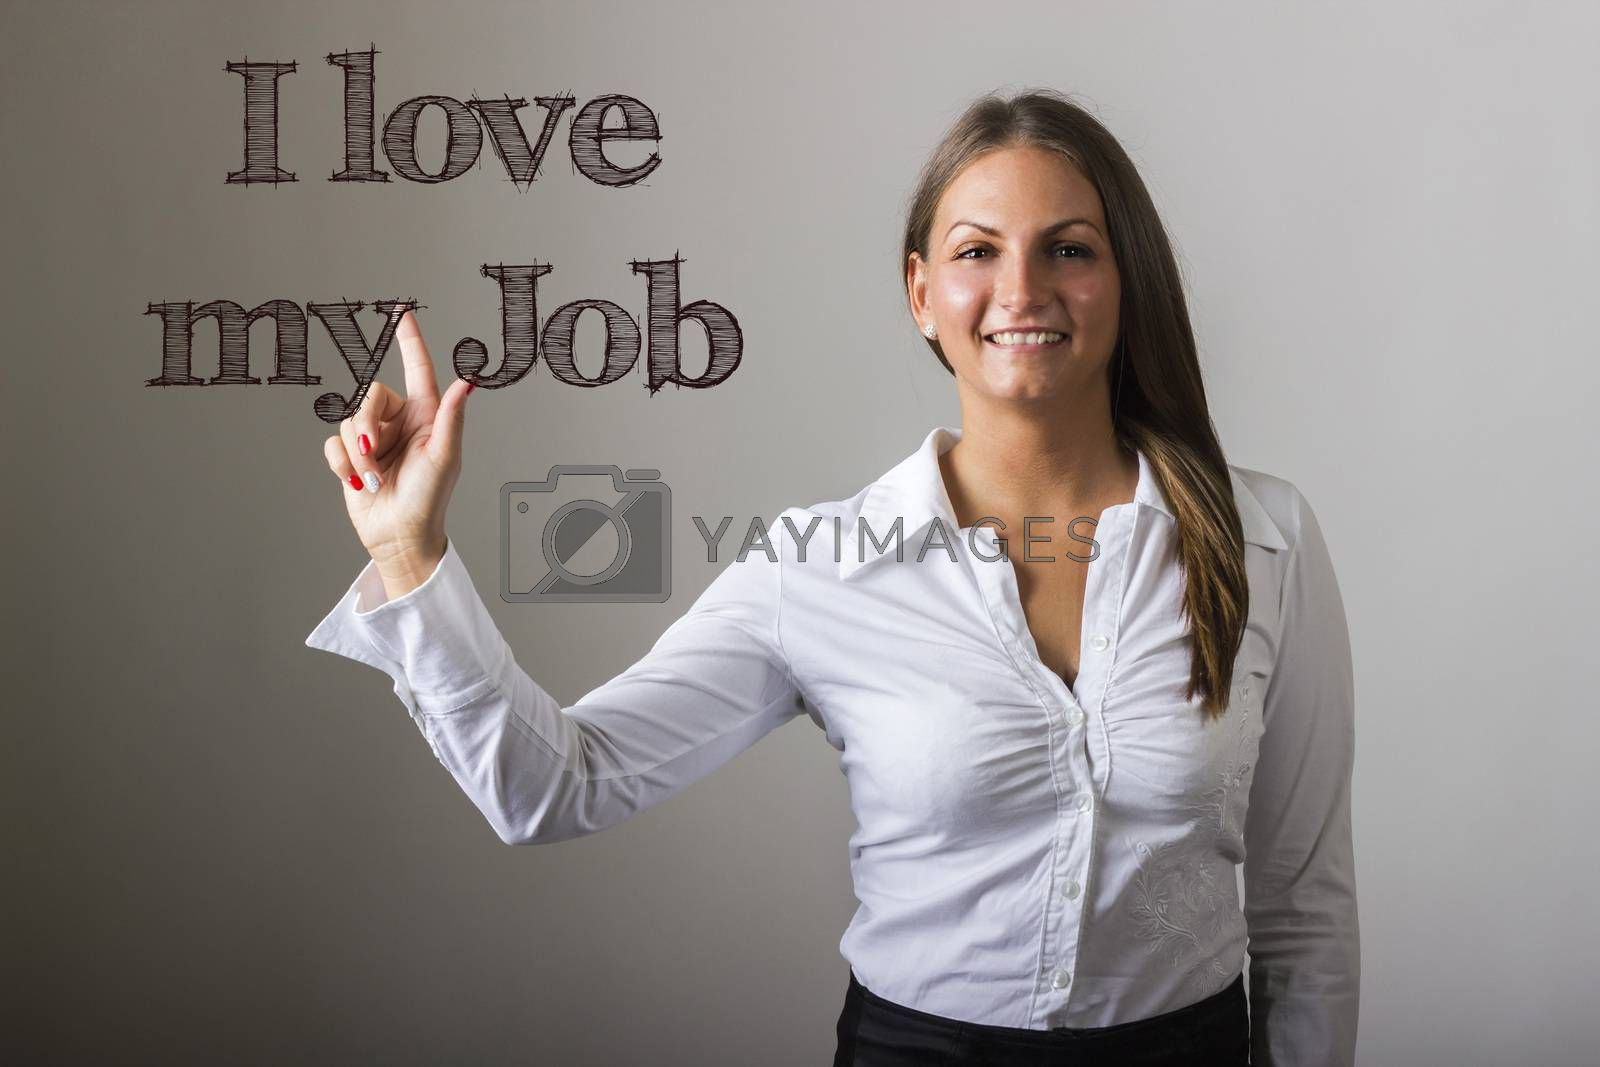 I love my Job - Beautiful girl touching text on transparent surface - horizontal image